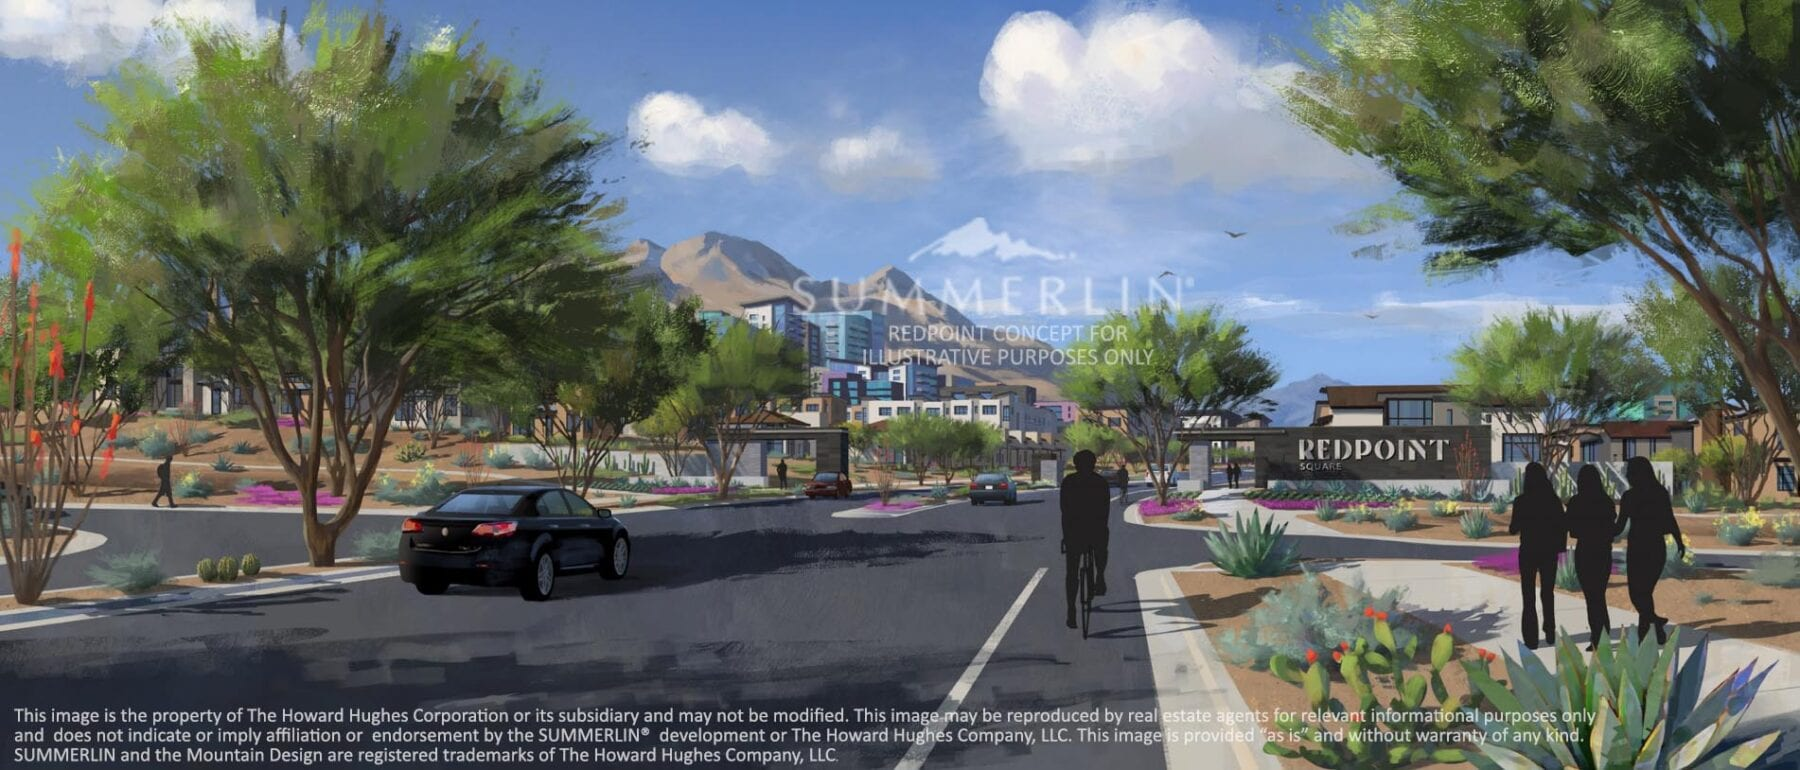 Redpoint Square in Summerlin West Illustrative Conceptual Rendering - Credit: The Howard Hughes Corporation